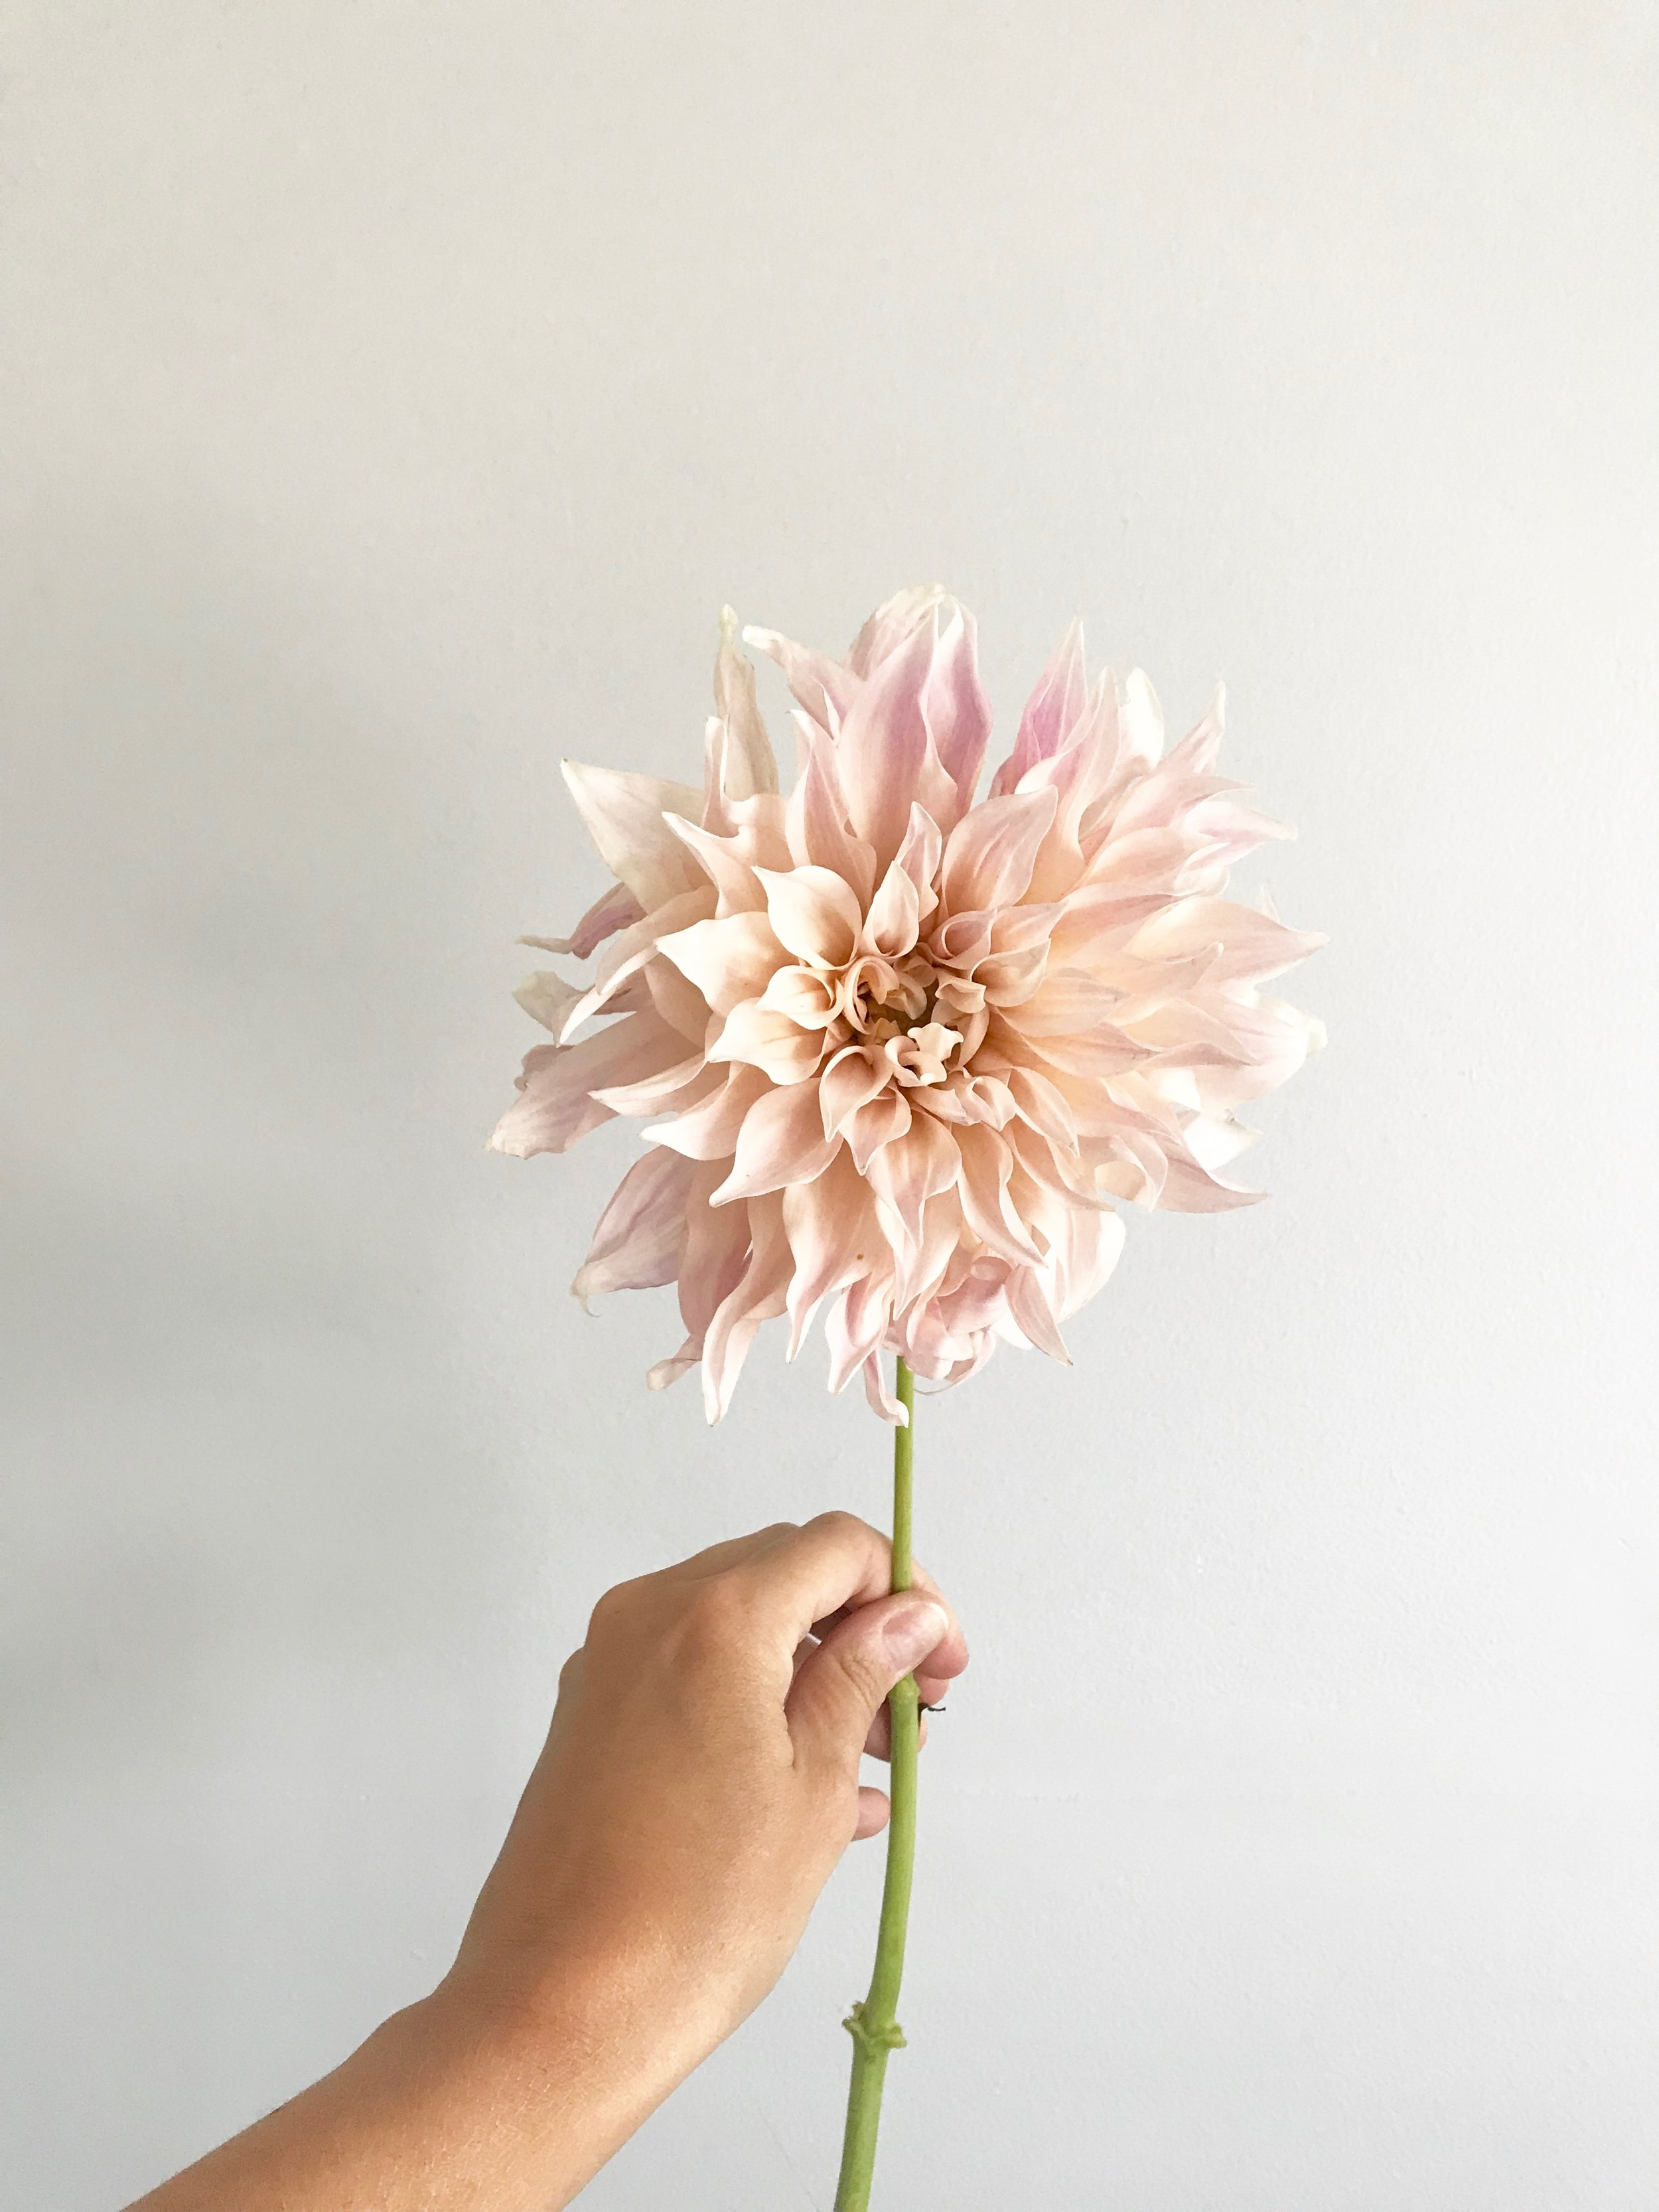 These dahlias are a perfect transition between summer and fall, because they come in beautiful shades of blush and light taupe, but prefer the cooler temperatures that fall weather offers. They are huge, often the size of your open hand, making a great focal point in bouquets!